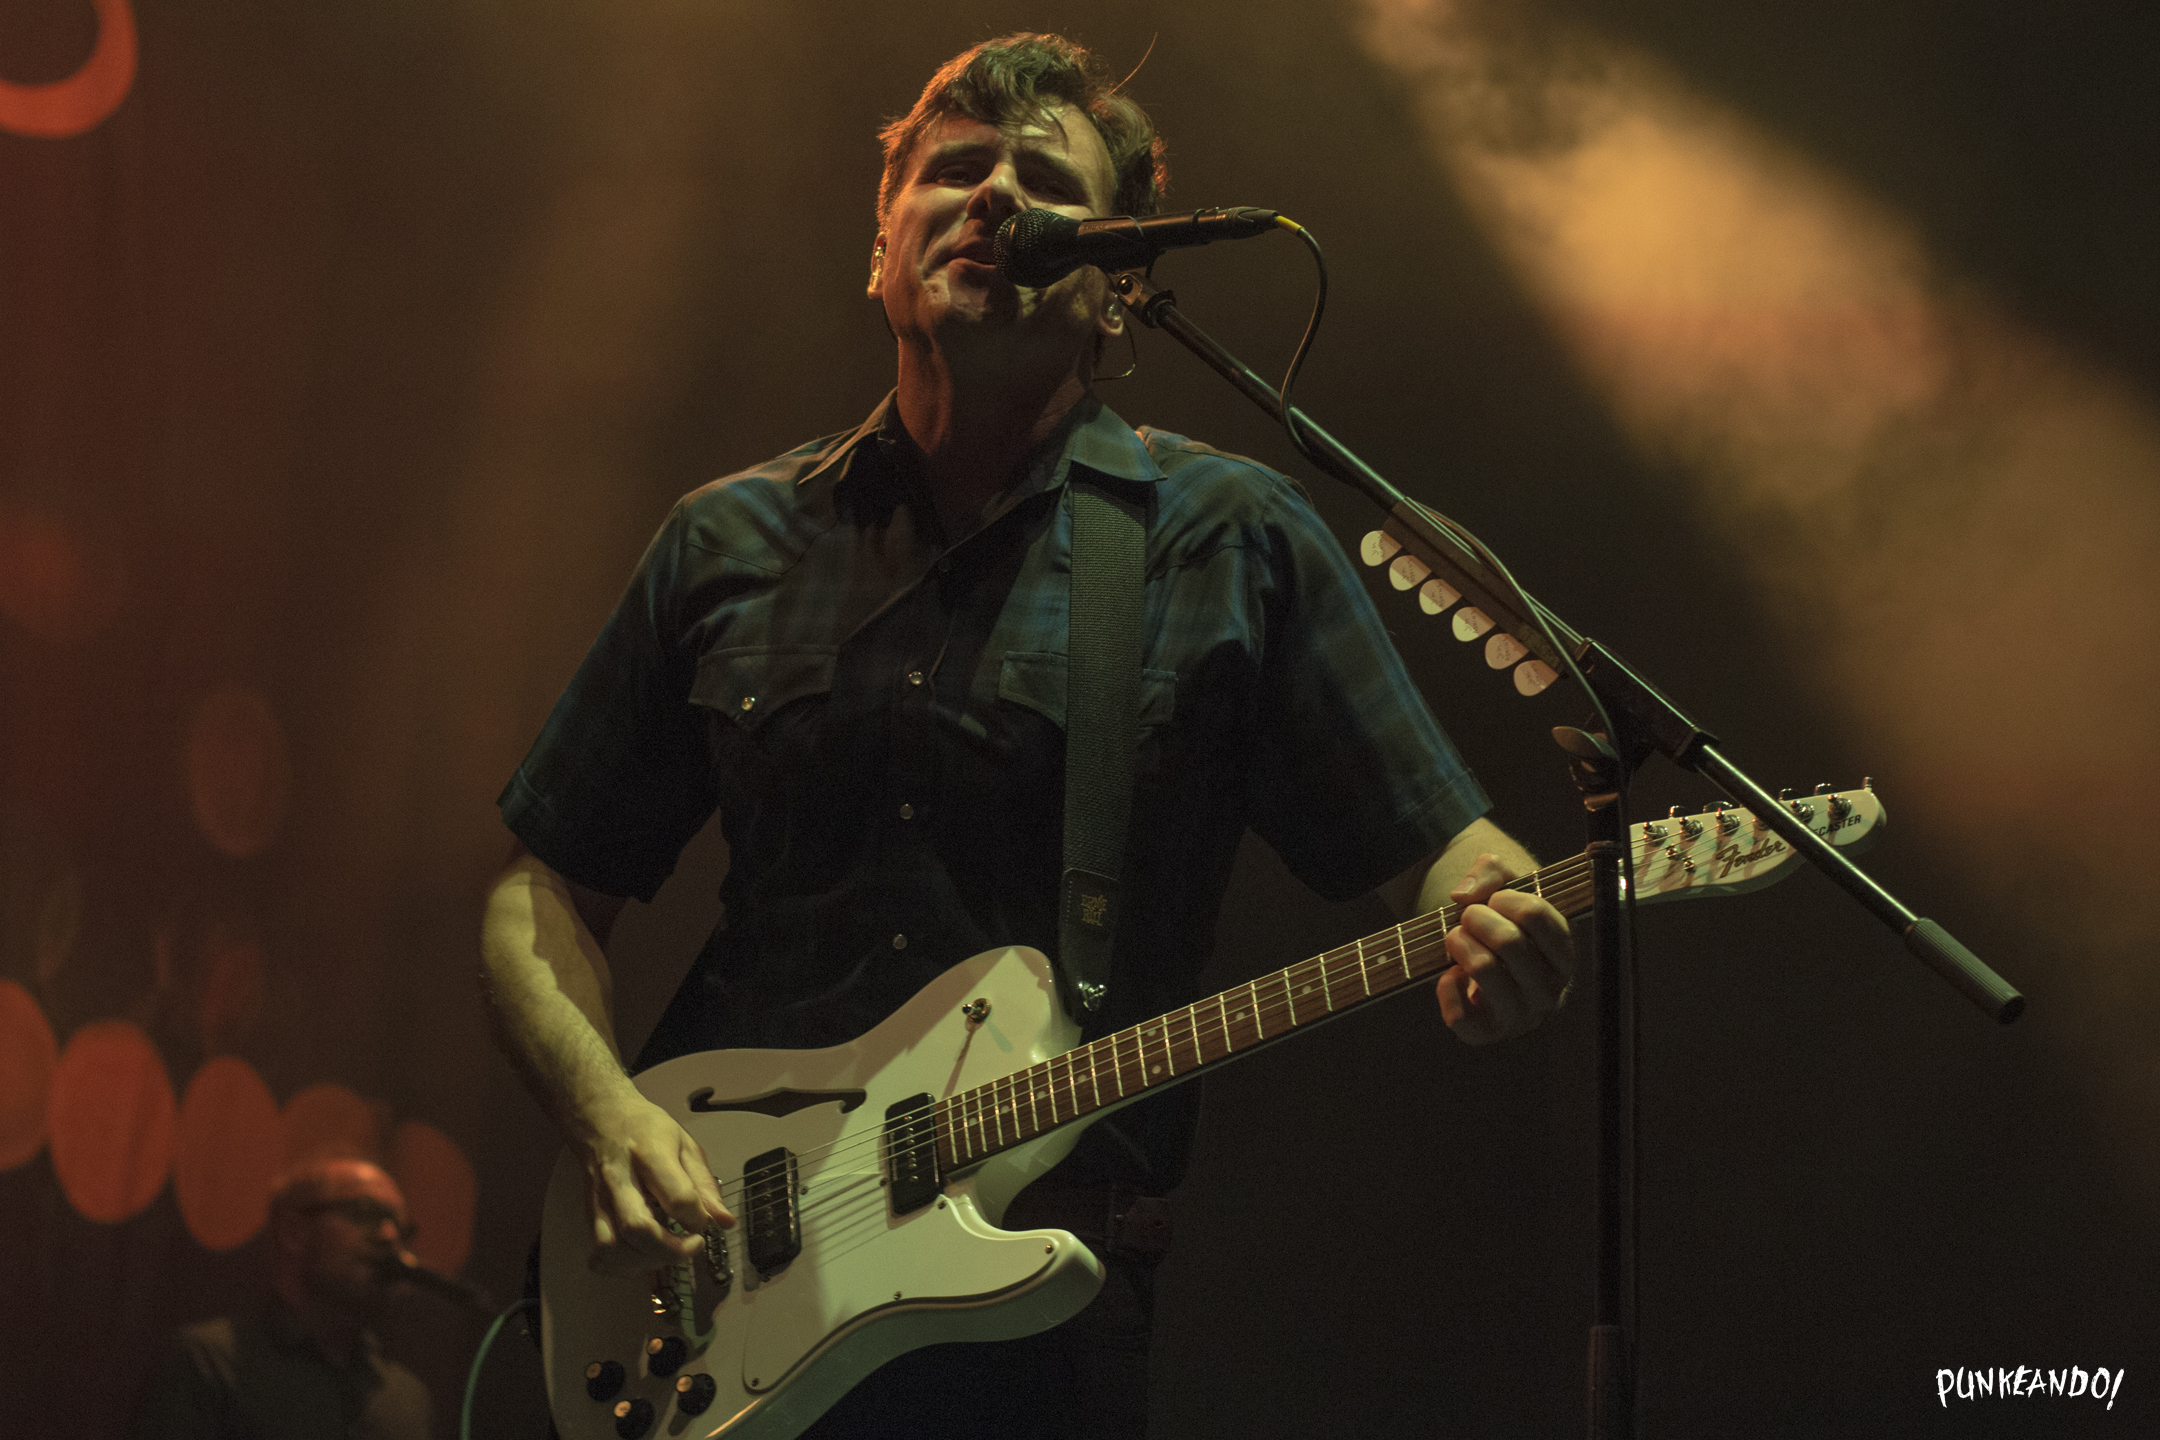 La revancha de Jimmy Eat World en México